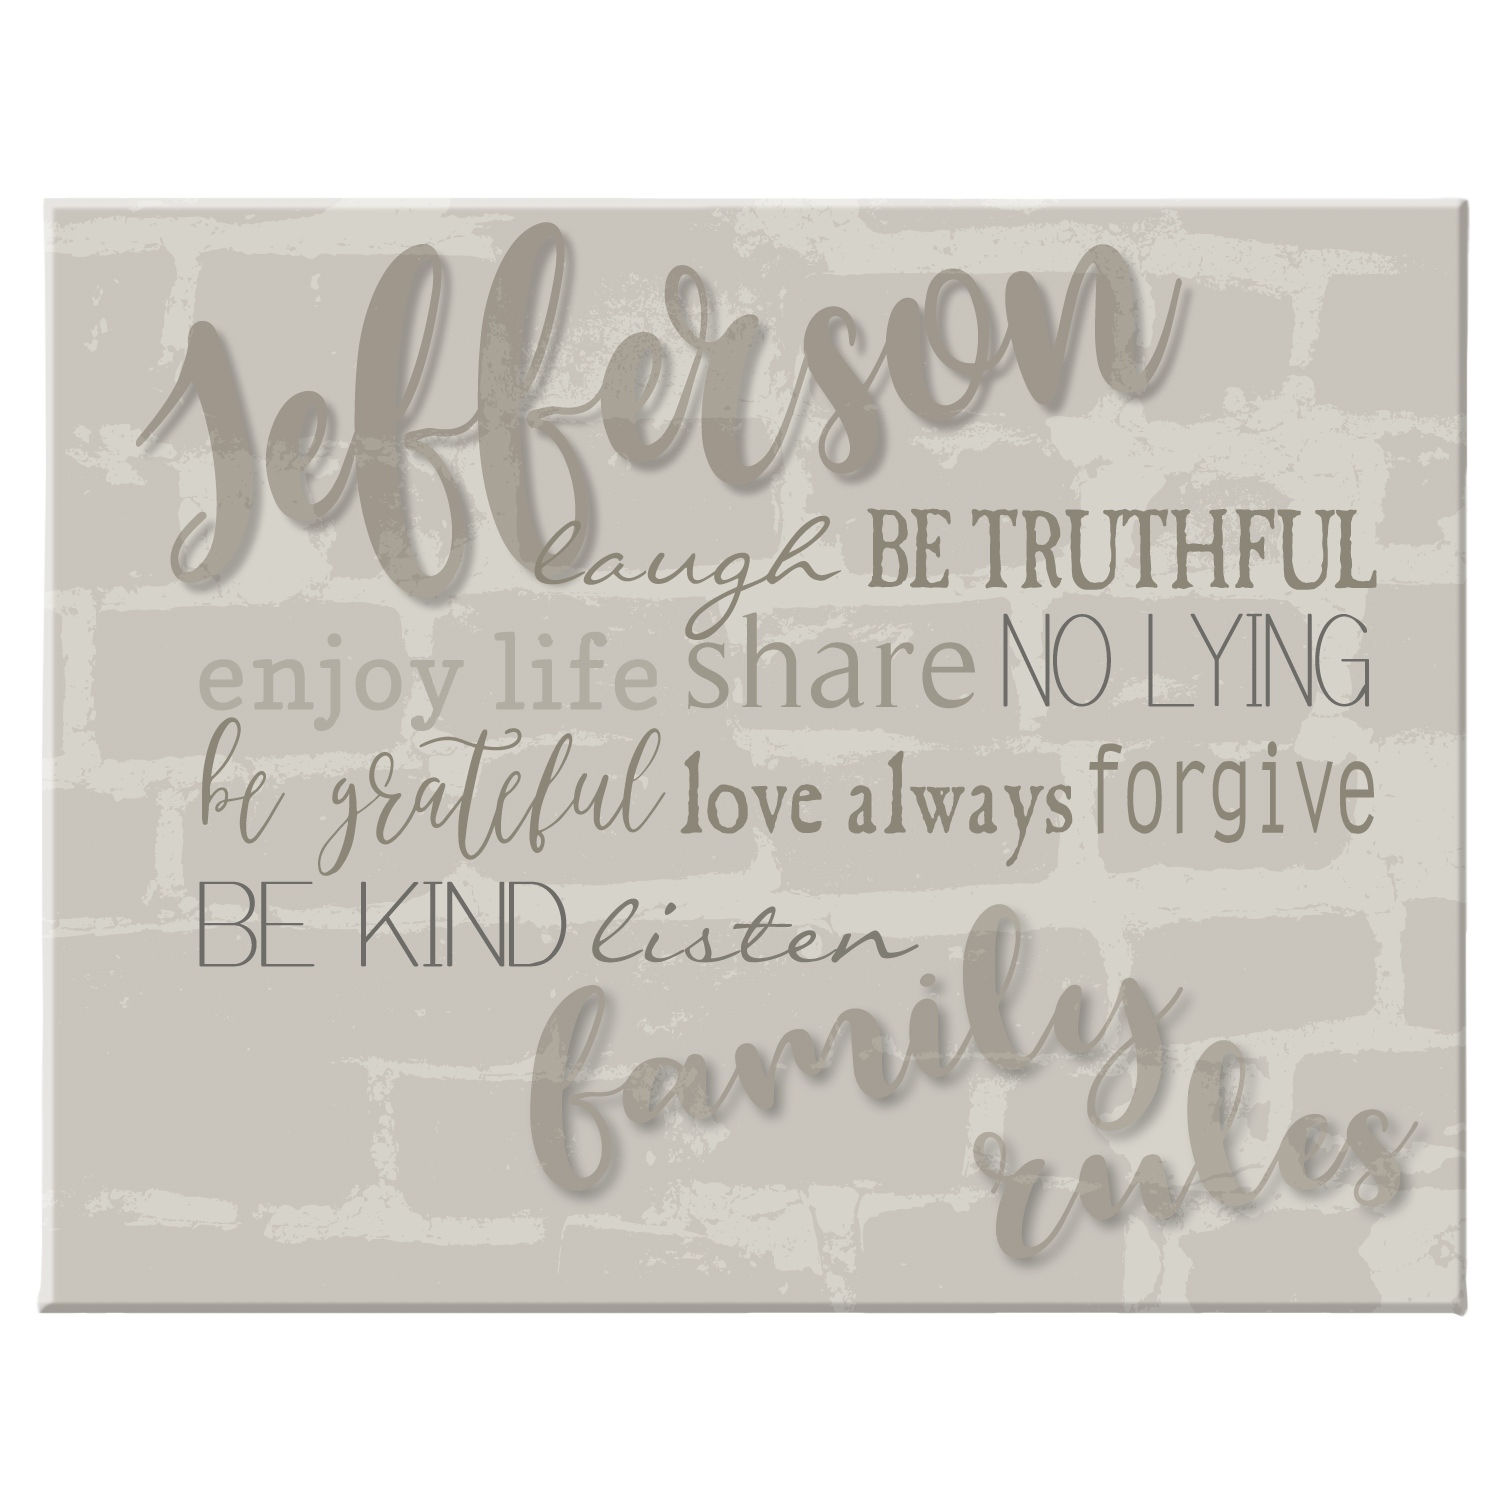 Personalized Modern Family Rules Canvas - Available in 3 Colors and 2 Size Options